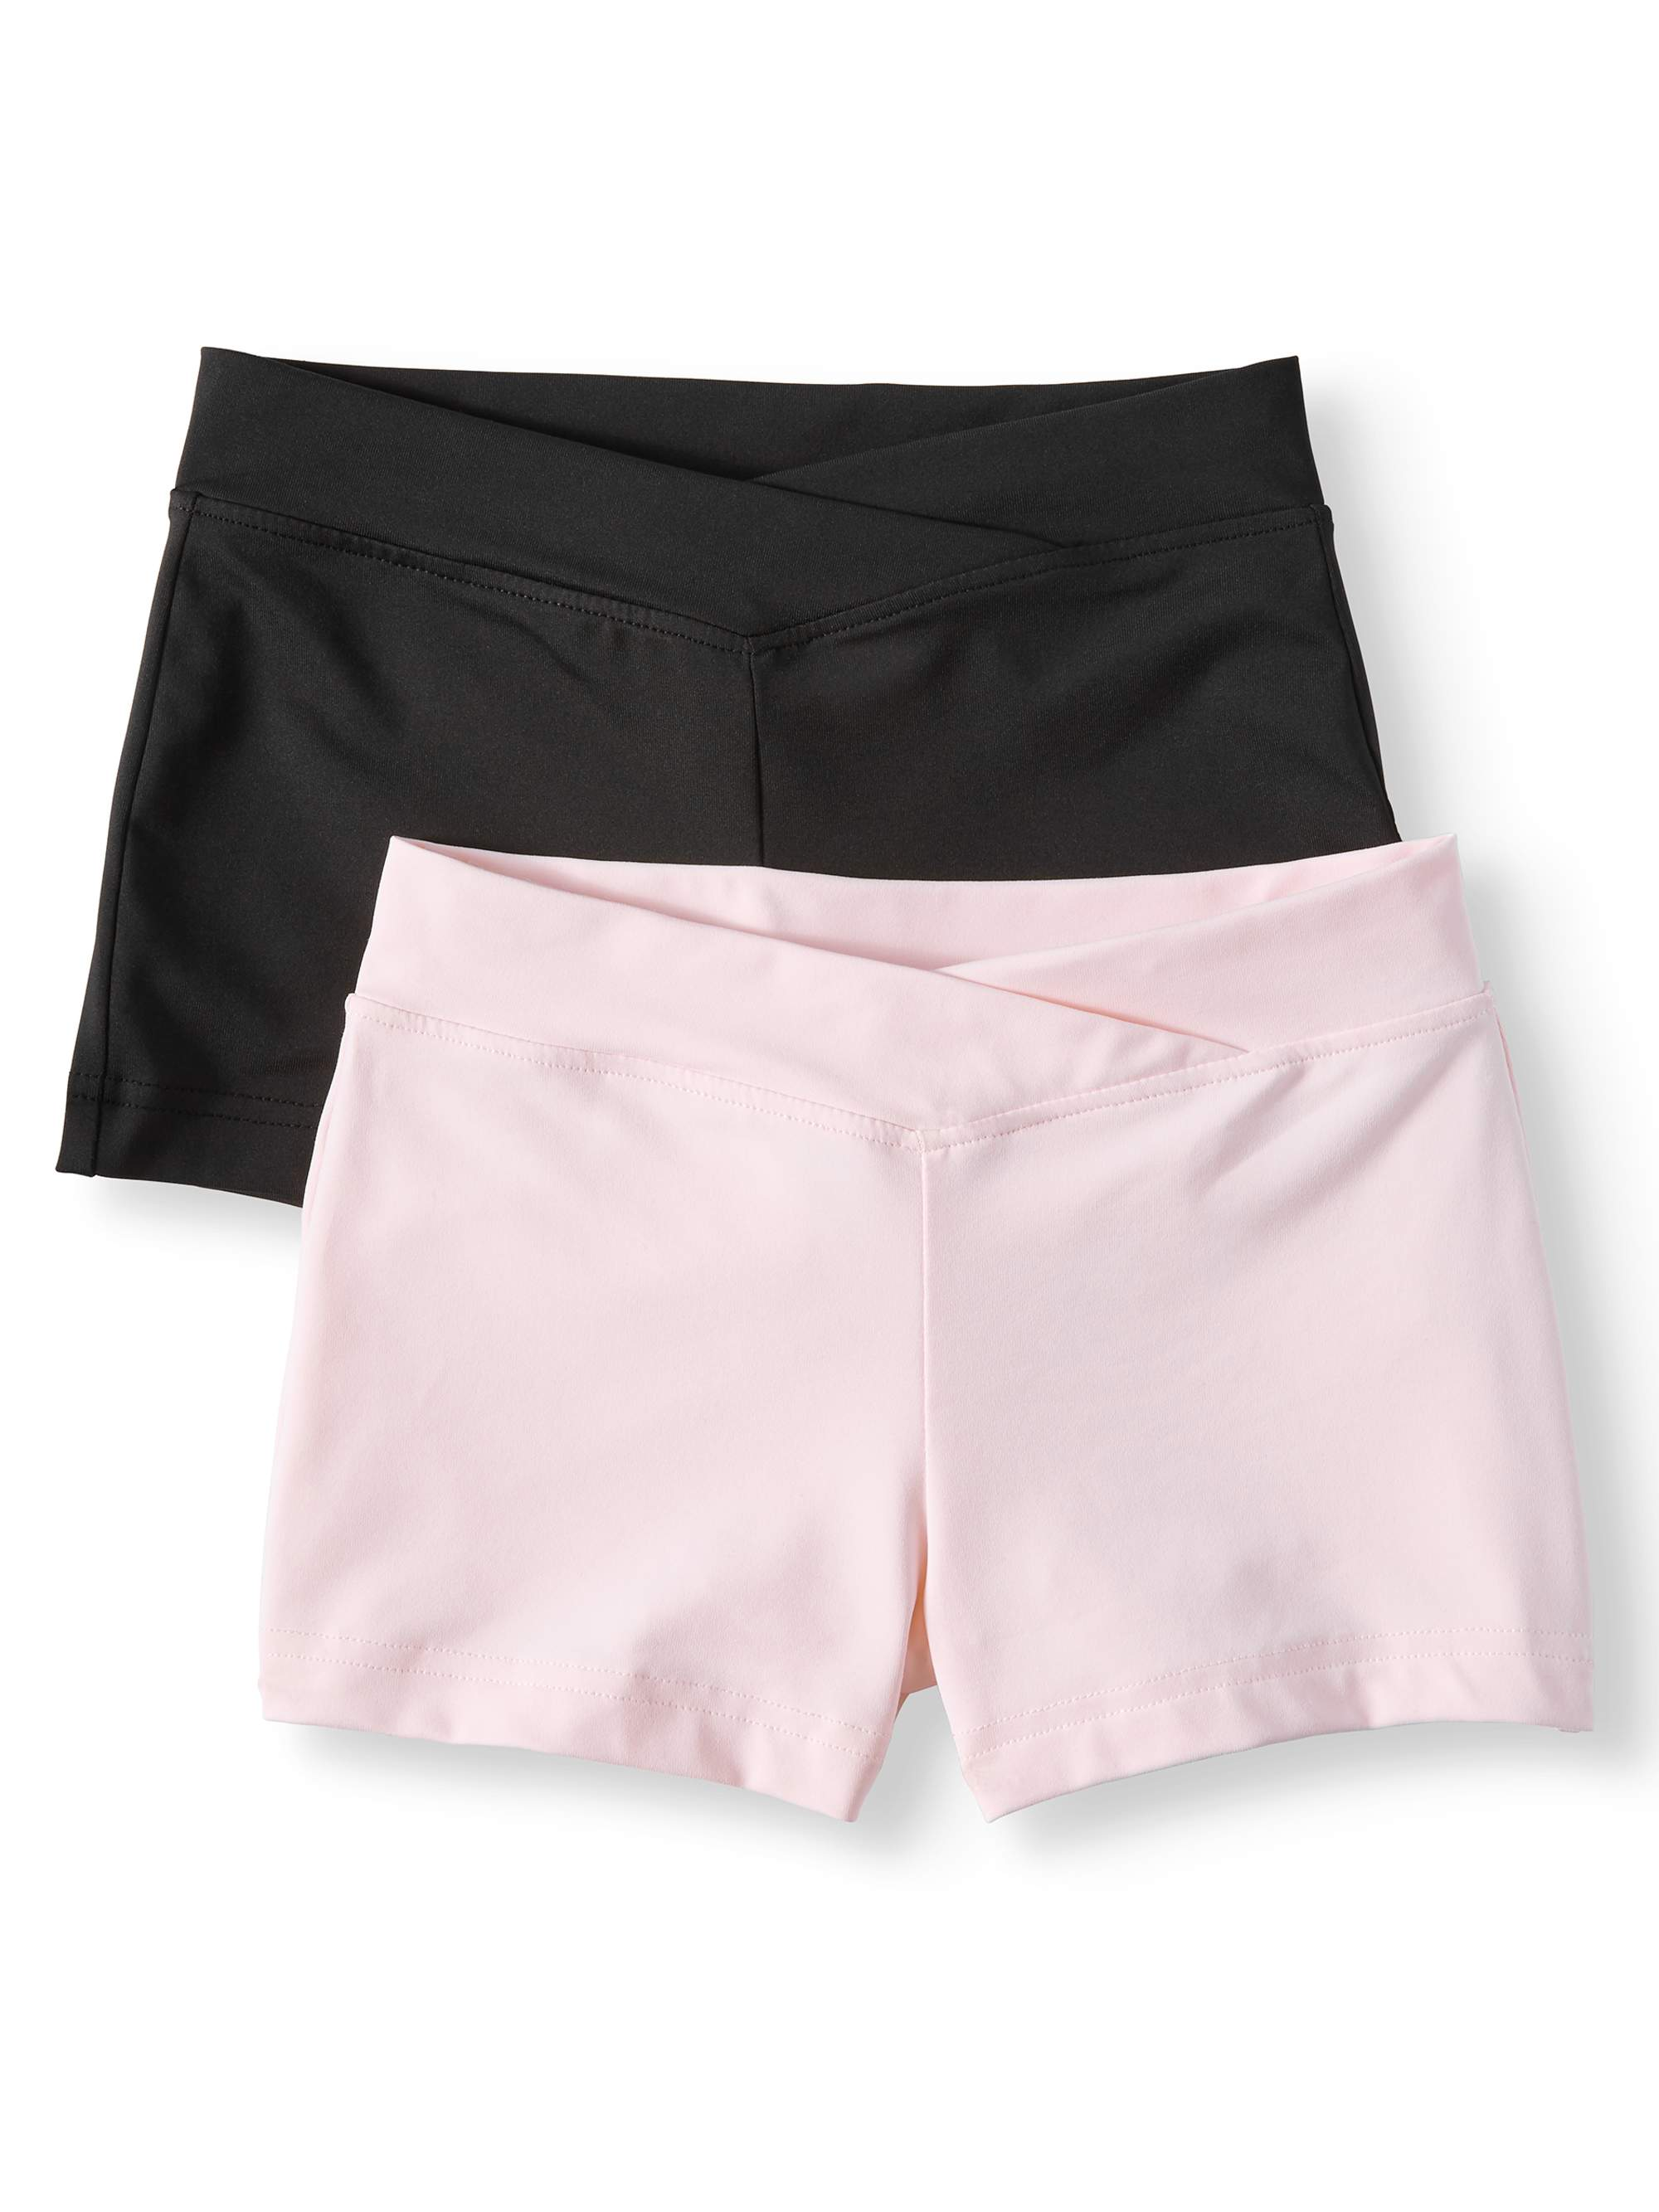 Danskin Now Girl's Premium Nylon dance short- 2 pack